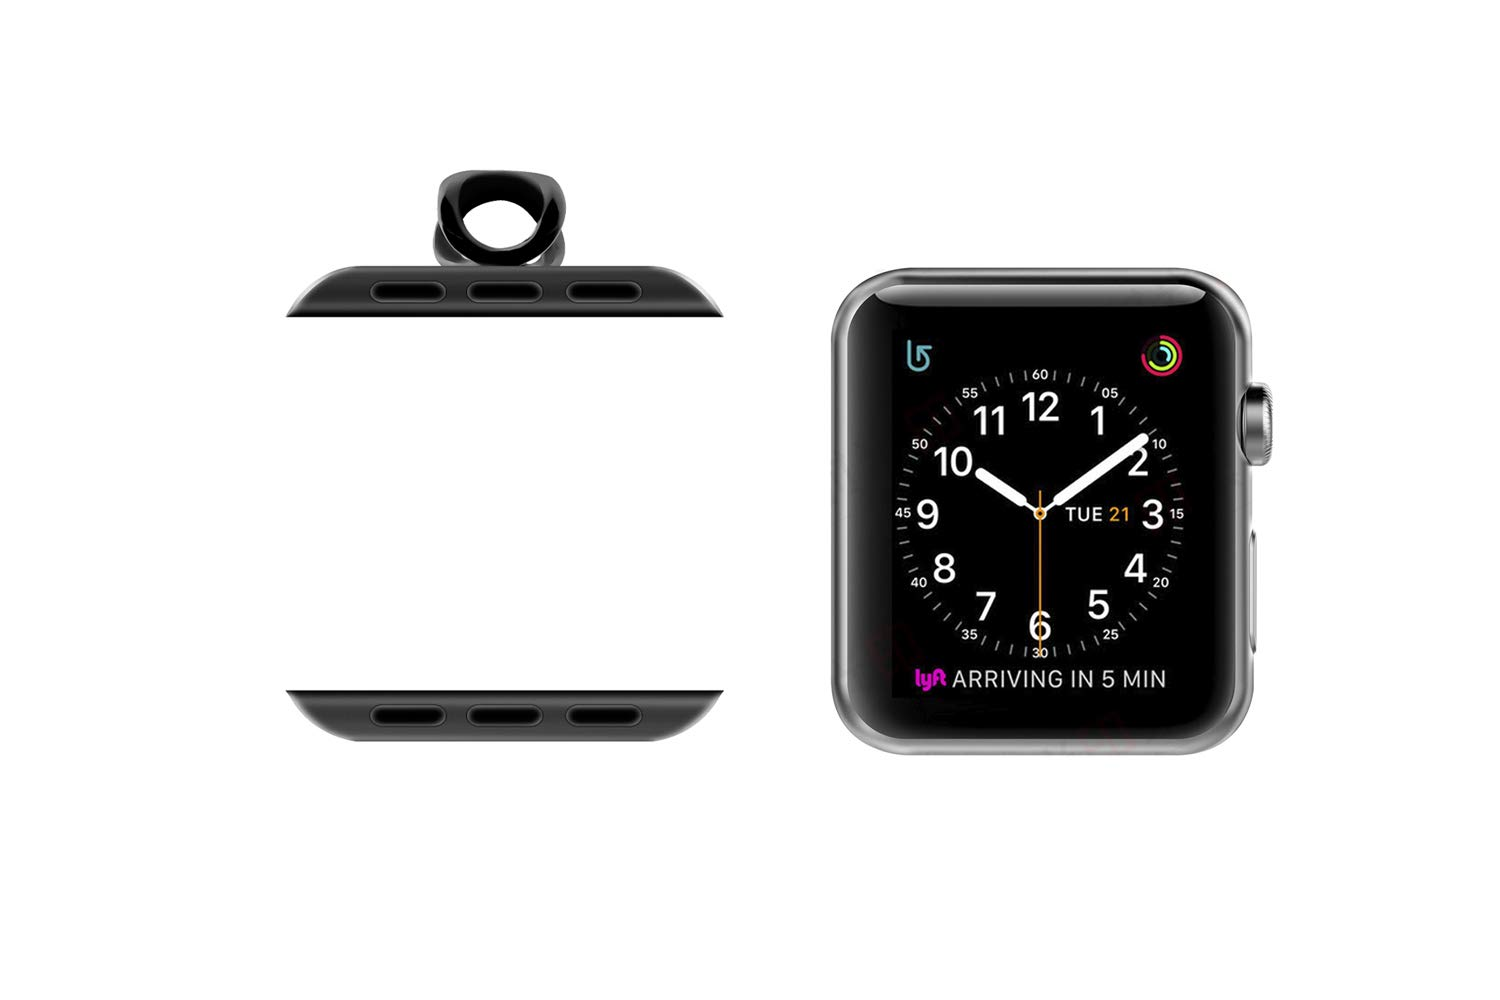 AsiaFly Necklace Pendant Compatible Apple Watch, Infinity & Double Loop Connector for Apple Watch Series 4, Series 3, Series 2, Series 1 Sport & Edition - Black 42/44mm Infinity by AsiaFly (Image #2)